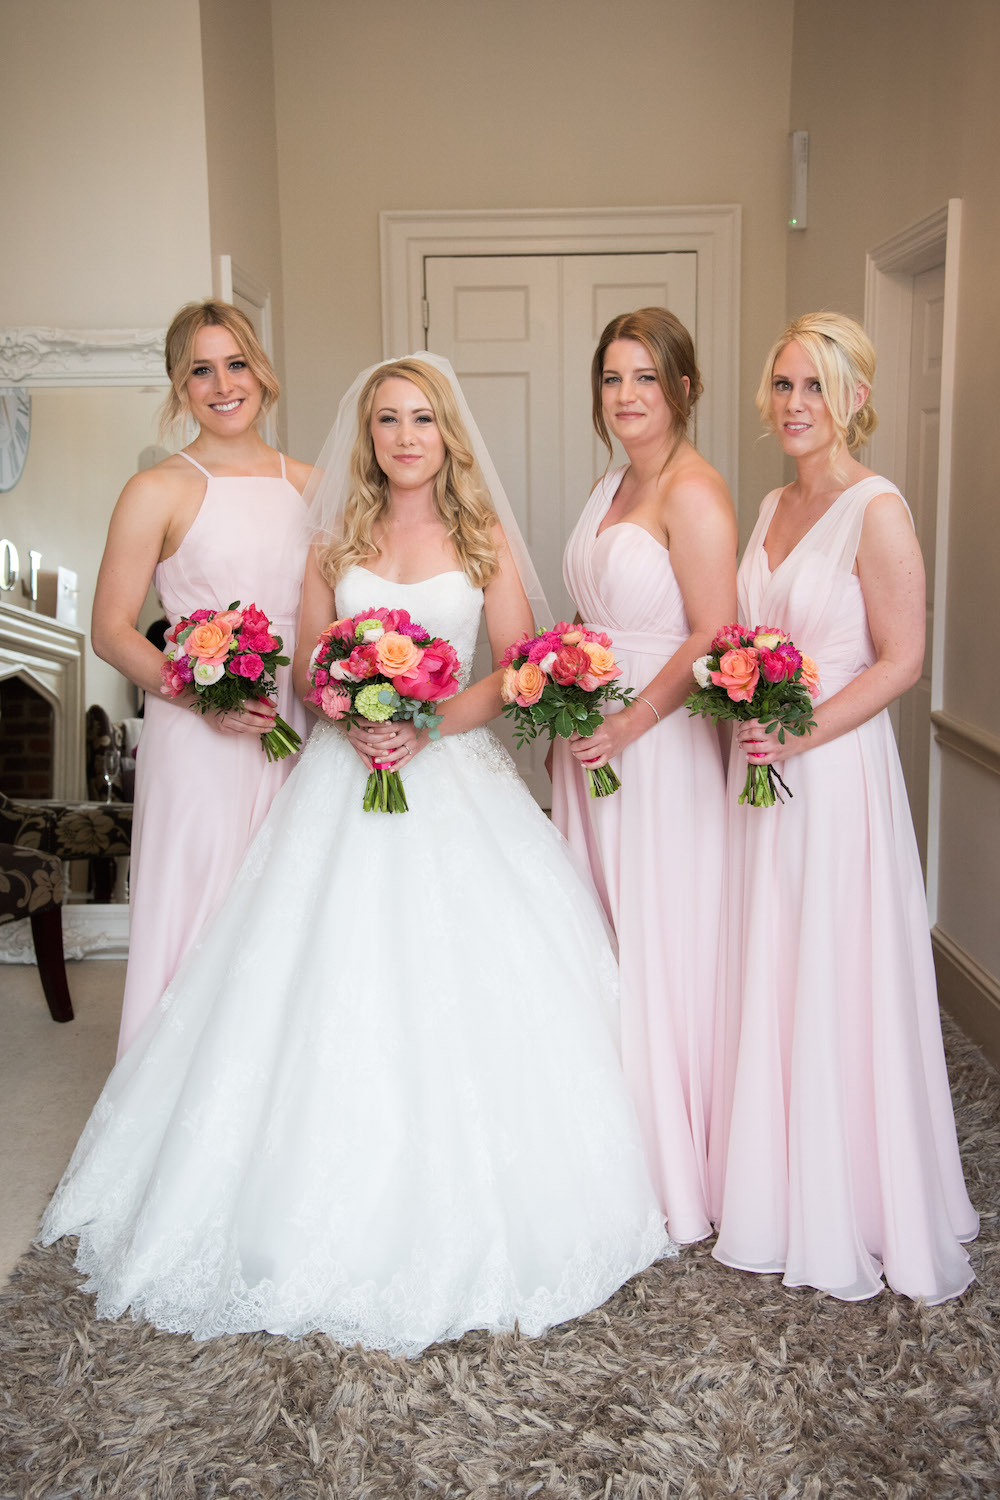 peach, coral and pink bouquets with blush bridesmaids dresses